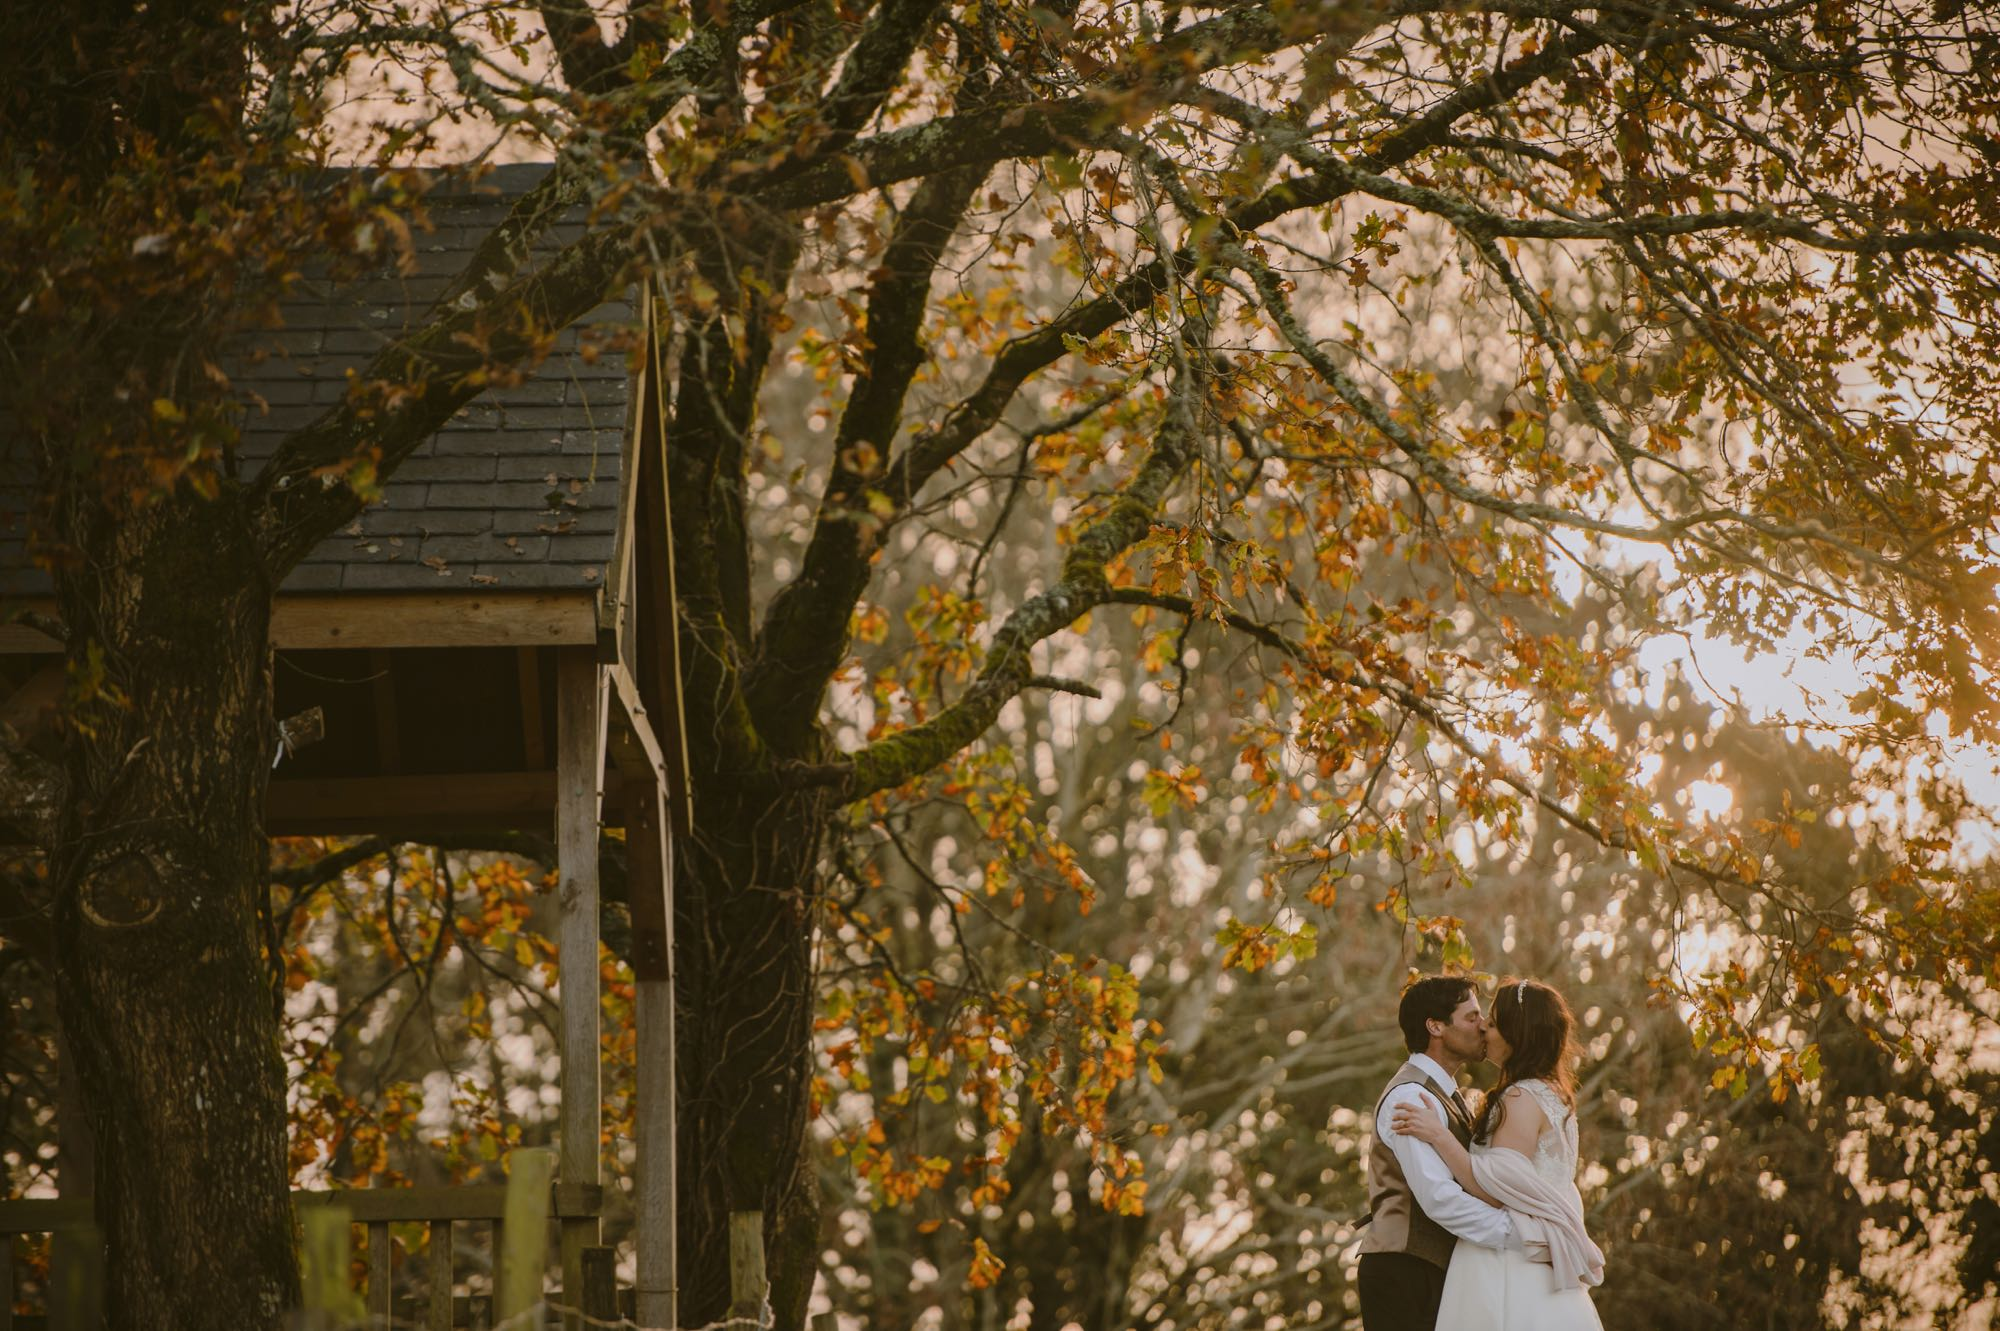 A couple having a romantic moment beside the Oak Arbour by themselves. This photo is taken side on to the arbour with the couple to the right of the shot. The arbour is a wooden structure with four corner posts supporting a pitched roof. The arbour has a large Oak Tree on each side. The trees are in autumn colours and the sun is shining through the branches. This picture is taken in the autumn. The couple are beside the arbour embracing. The couple are small compared to the trees and are shown from the knees up. The groom is on the left and the couple are embracing. The bride is wearing an ivory, short-sleeved, a-line dress. She has dark hair that she is wearing down. The groom is wearing a dark trousers a light bron waistcoat and has dark hair.